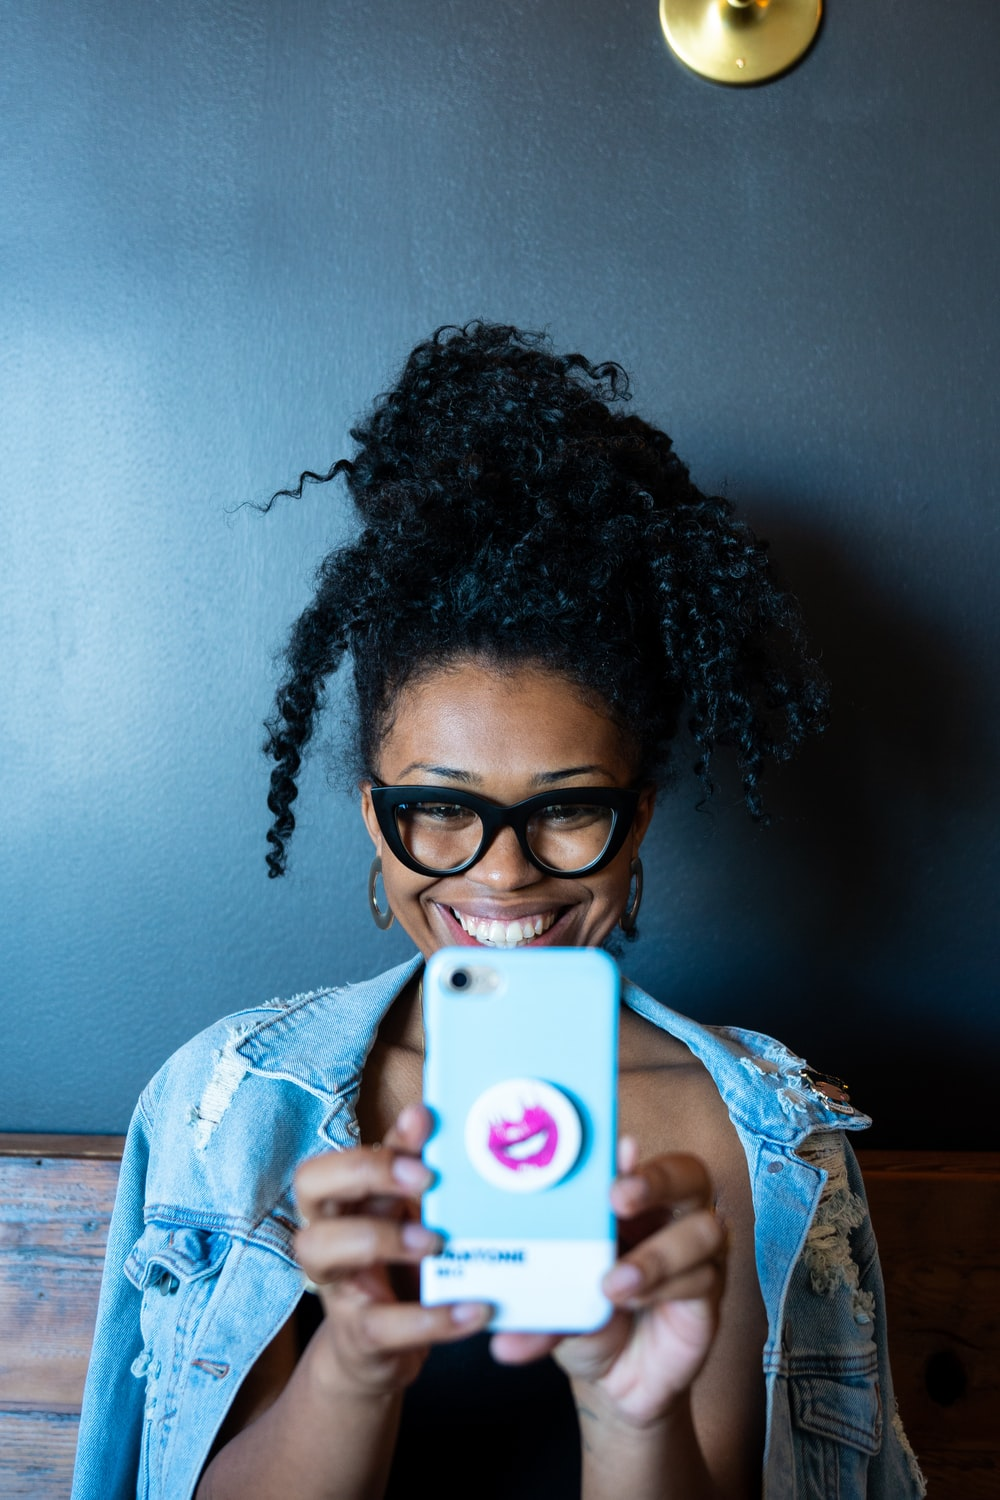 smiling woman while holding smartphone